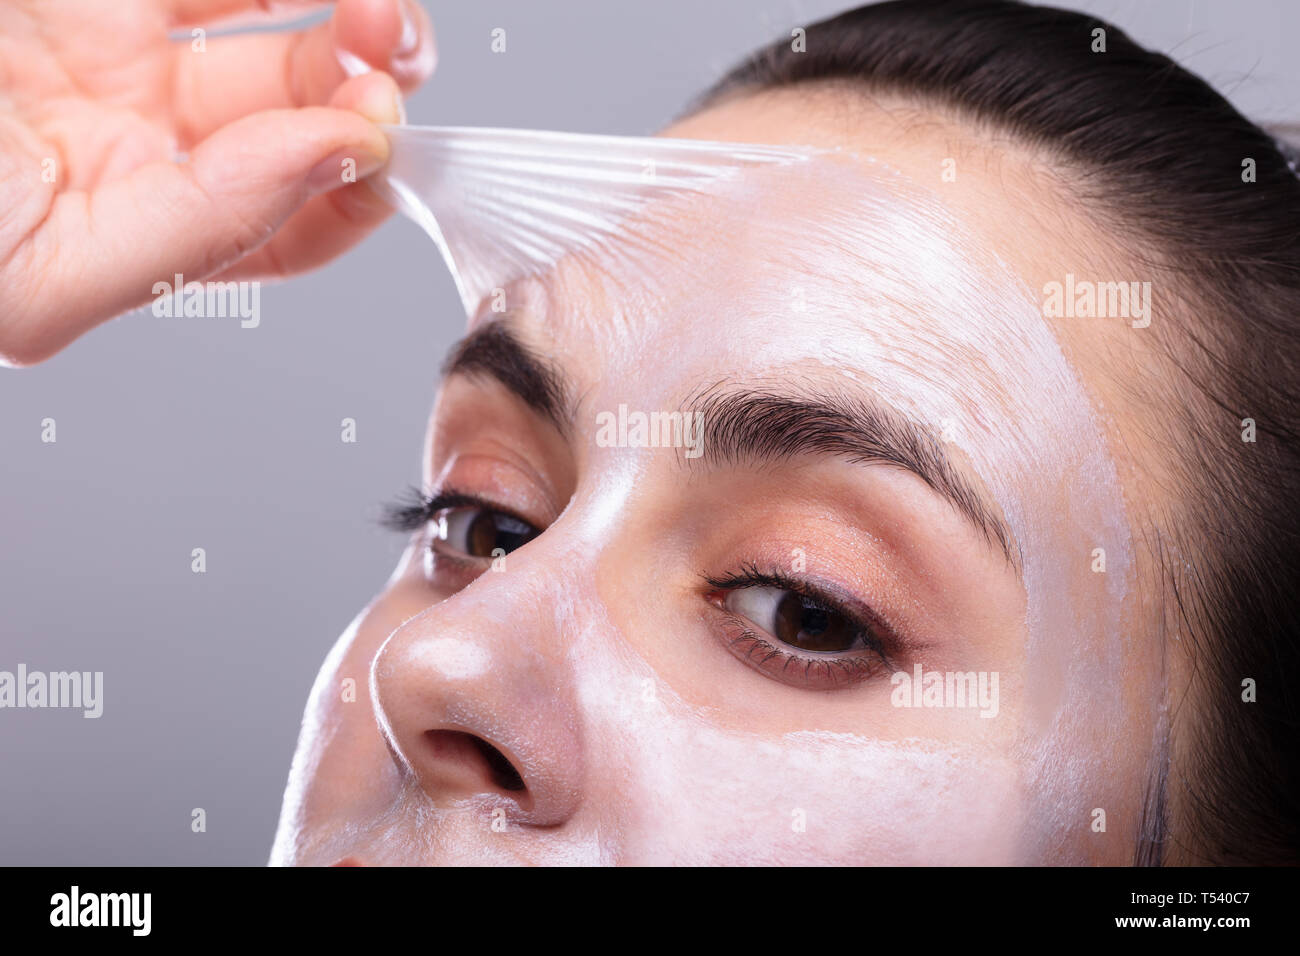 Portrait Of A Beautiful Young Woman Removing Peeling Mask From Her Face Stock Photo